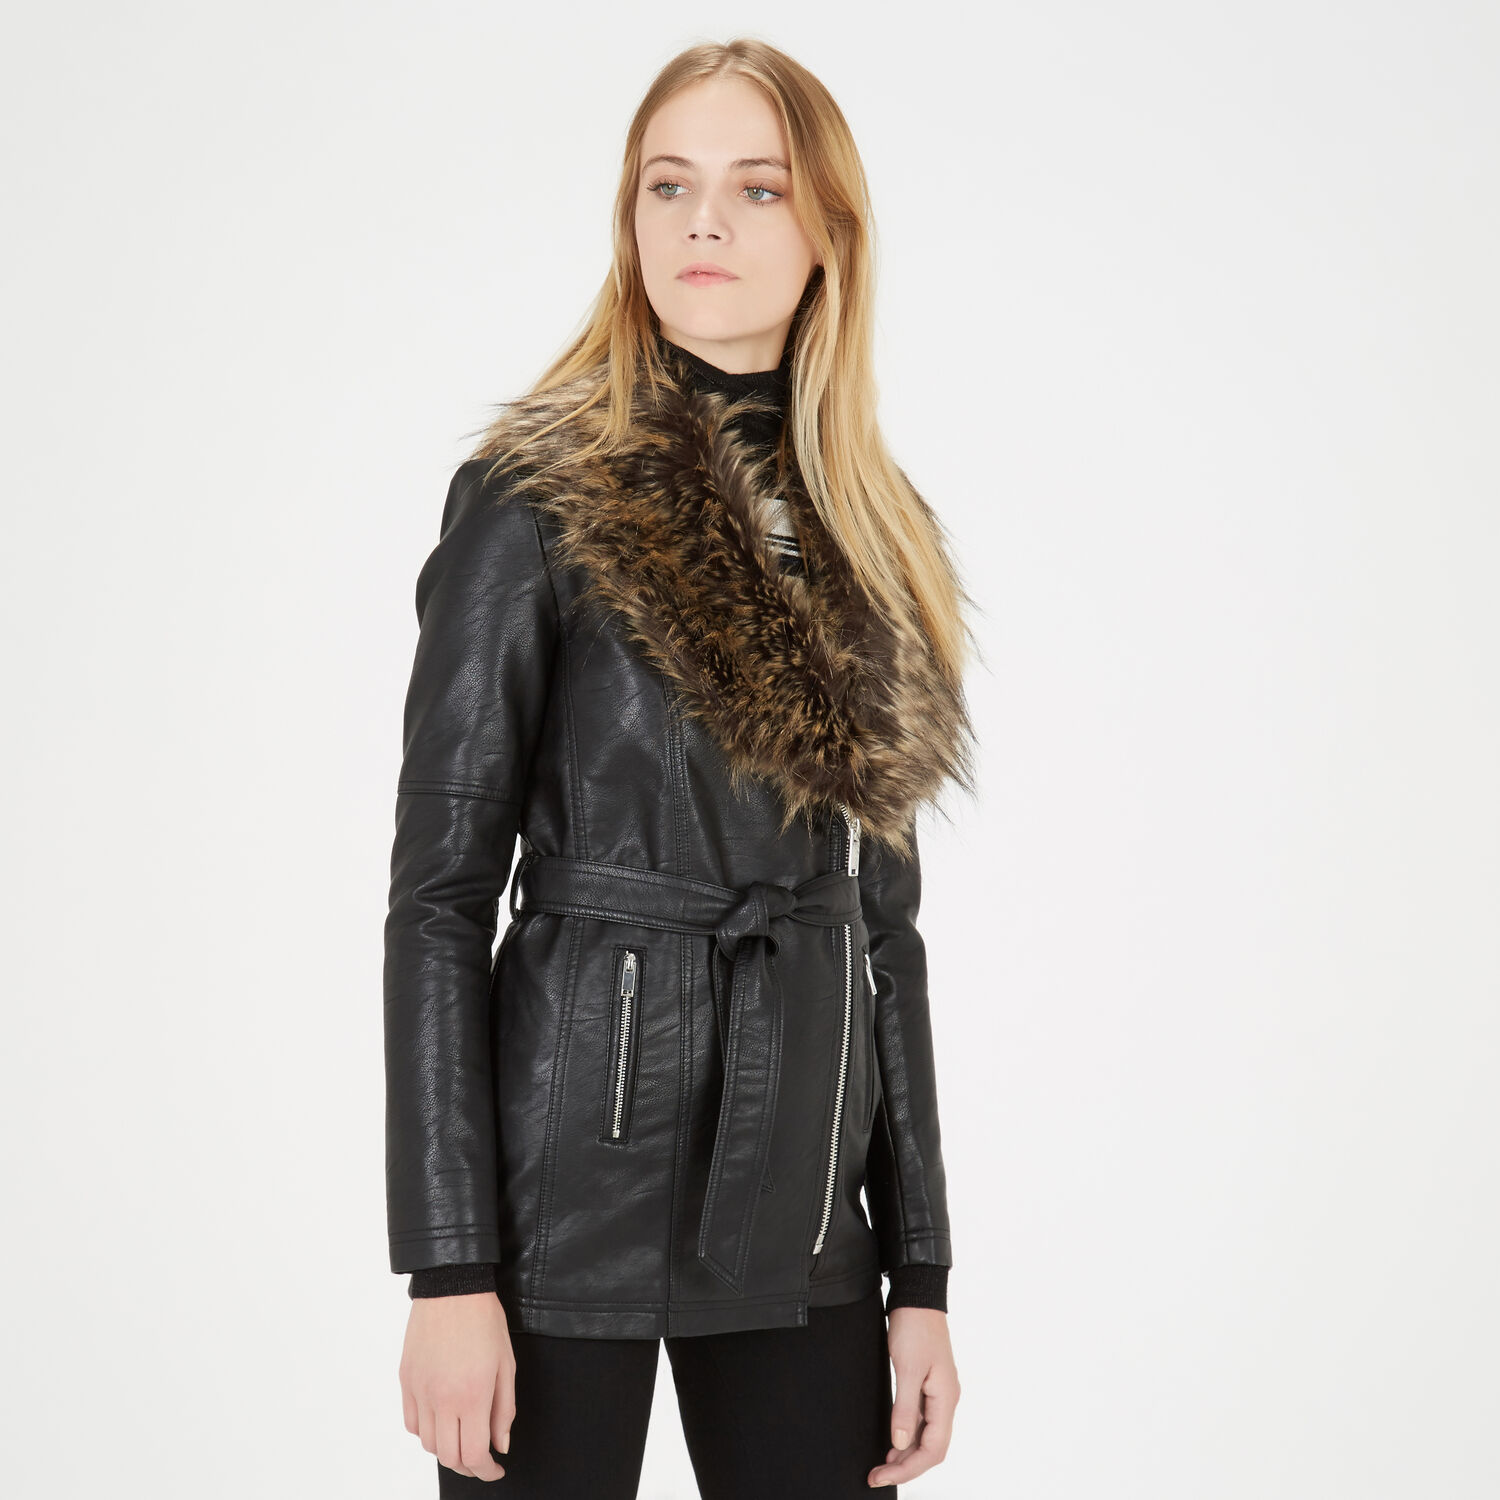 Warehouse, Faux Leather Belted Jacket Black 1